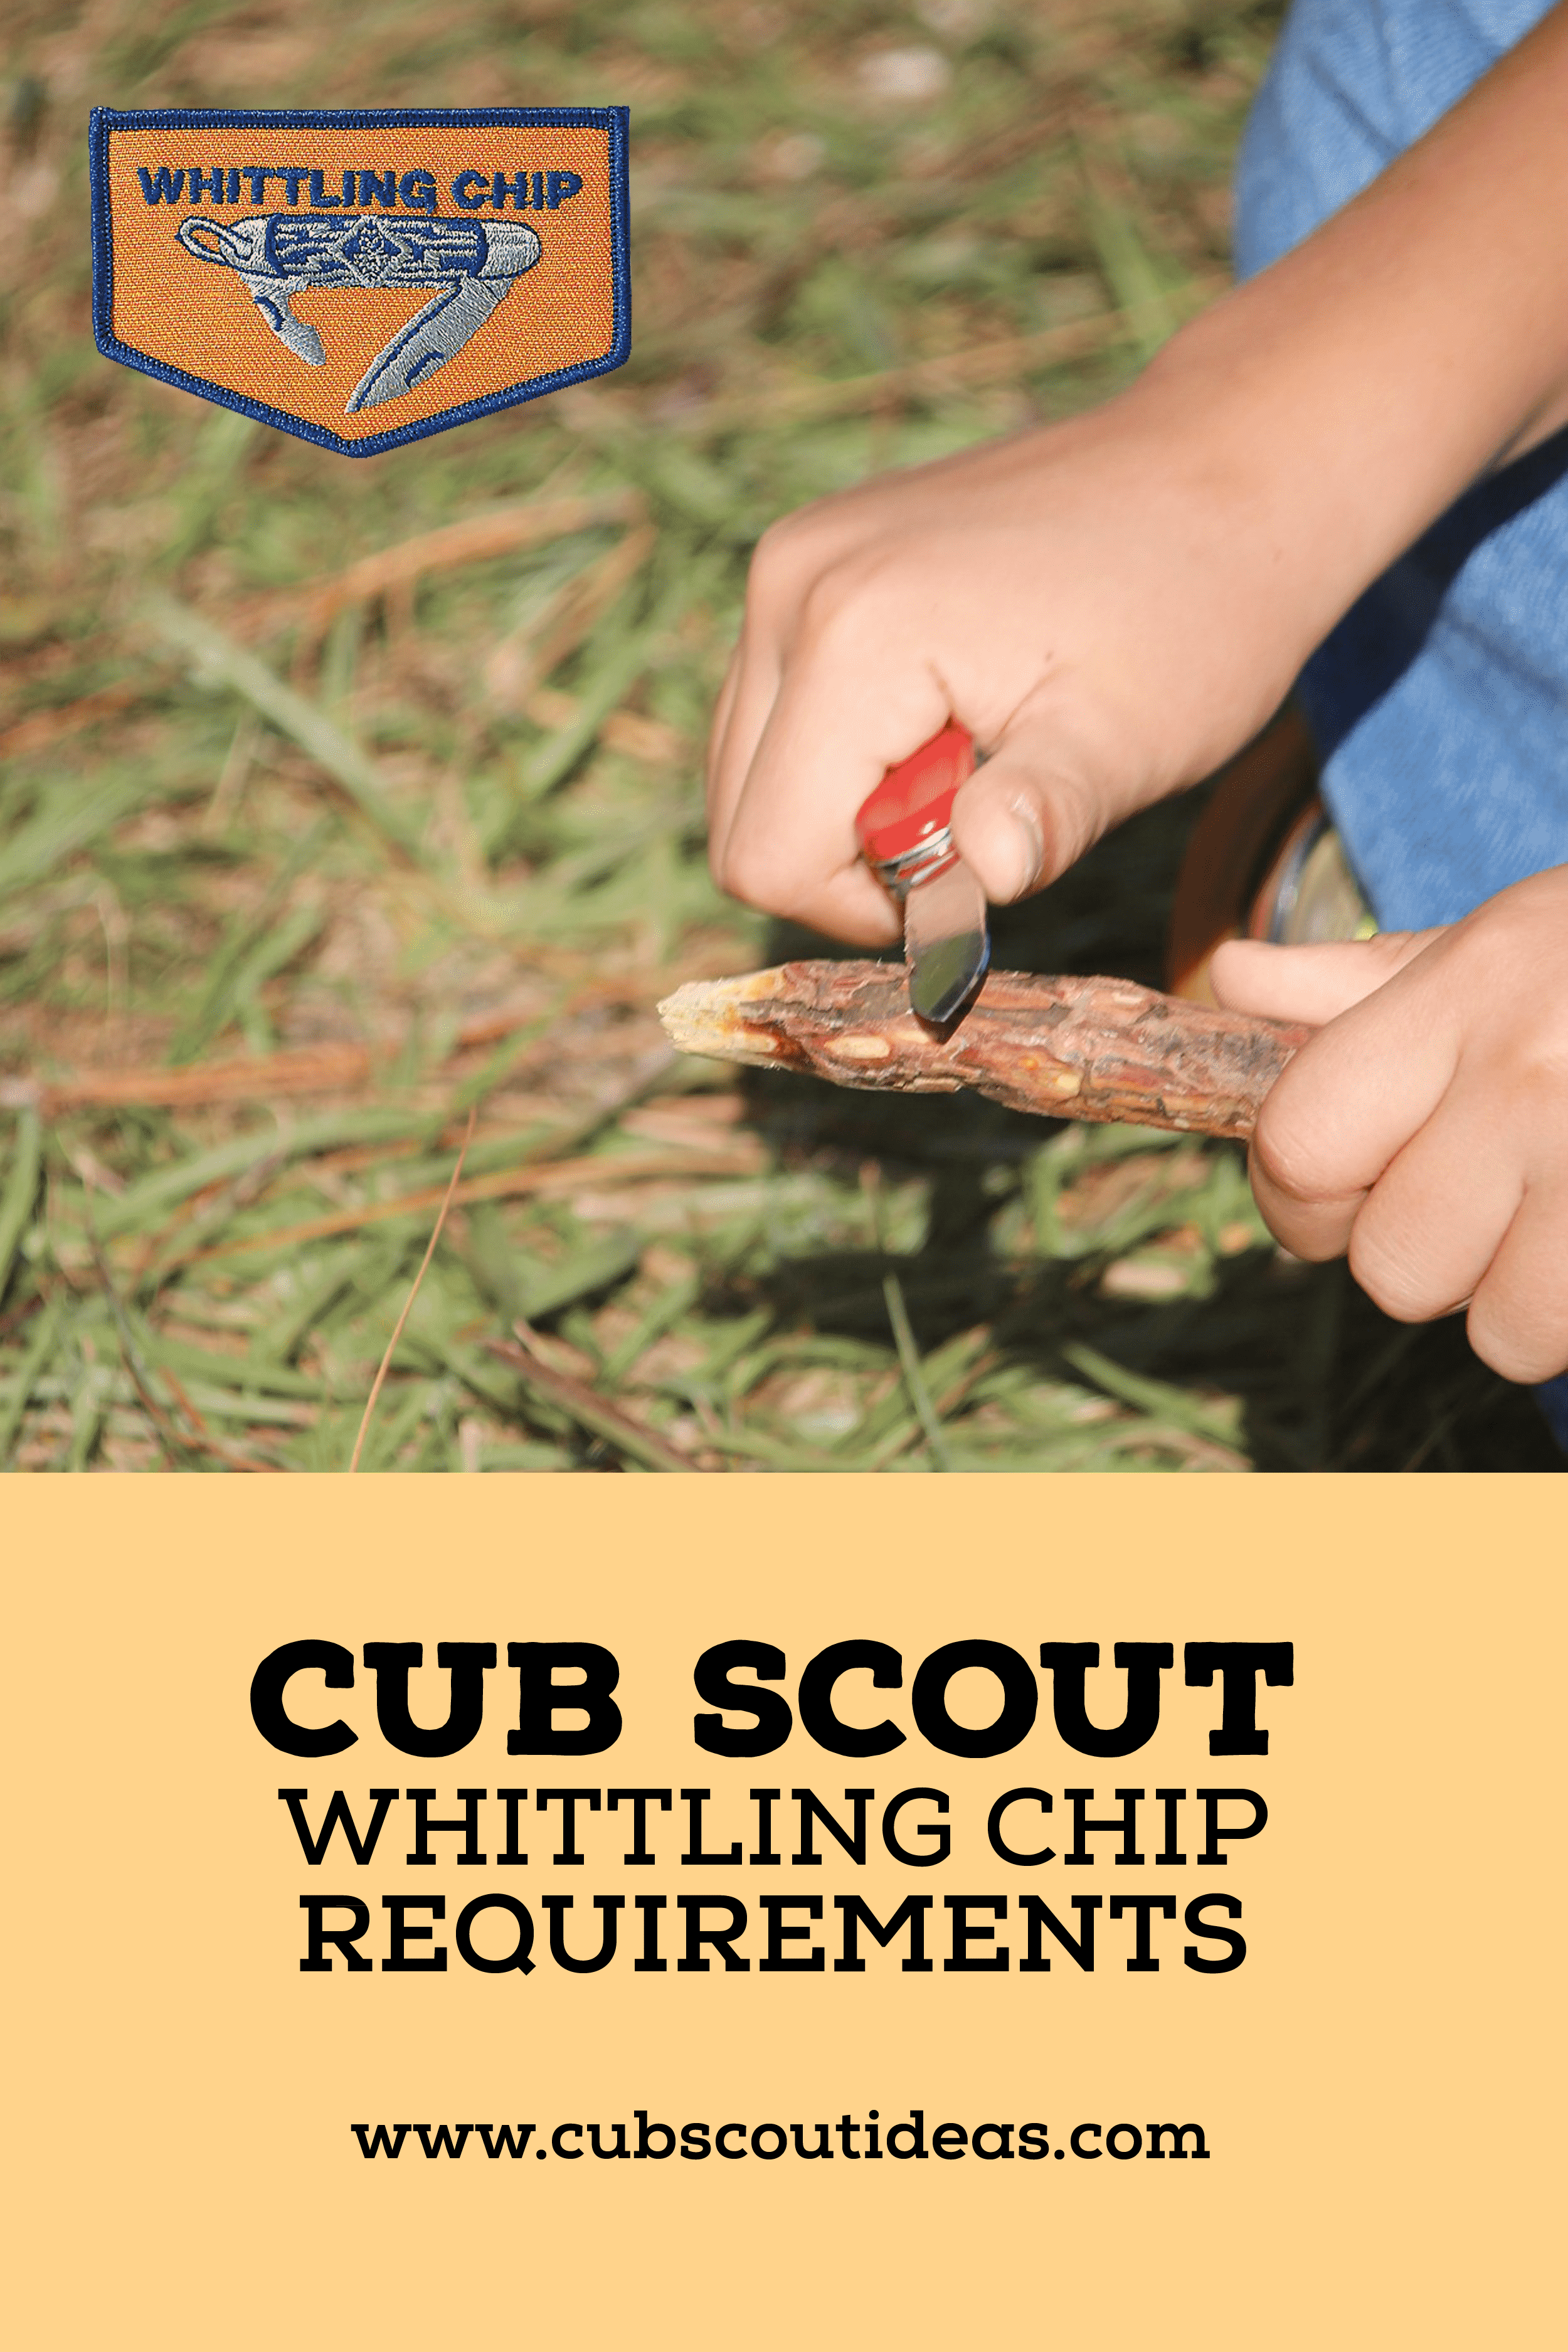 cub scout whittling chip requirements